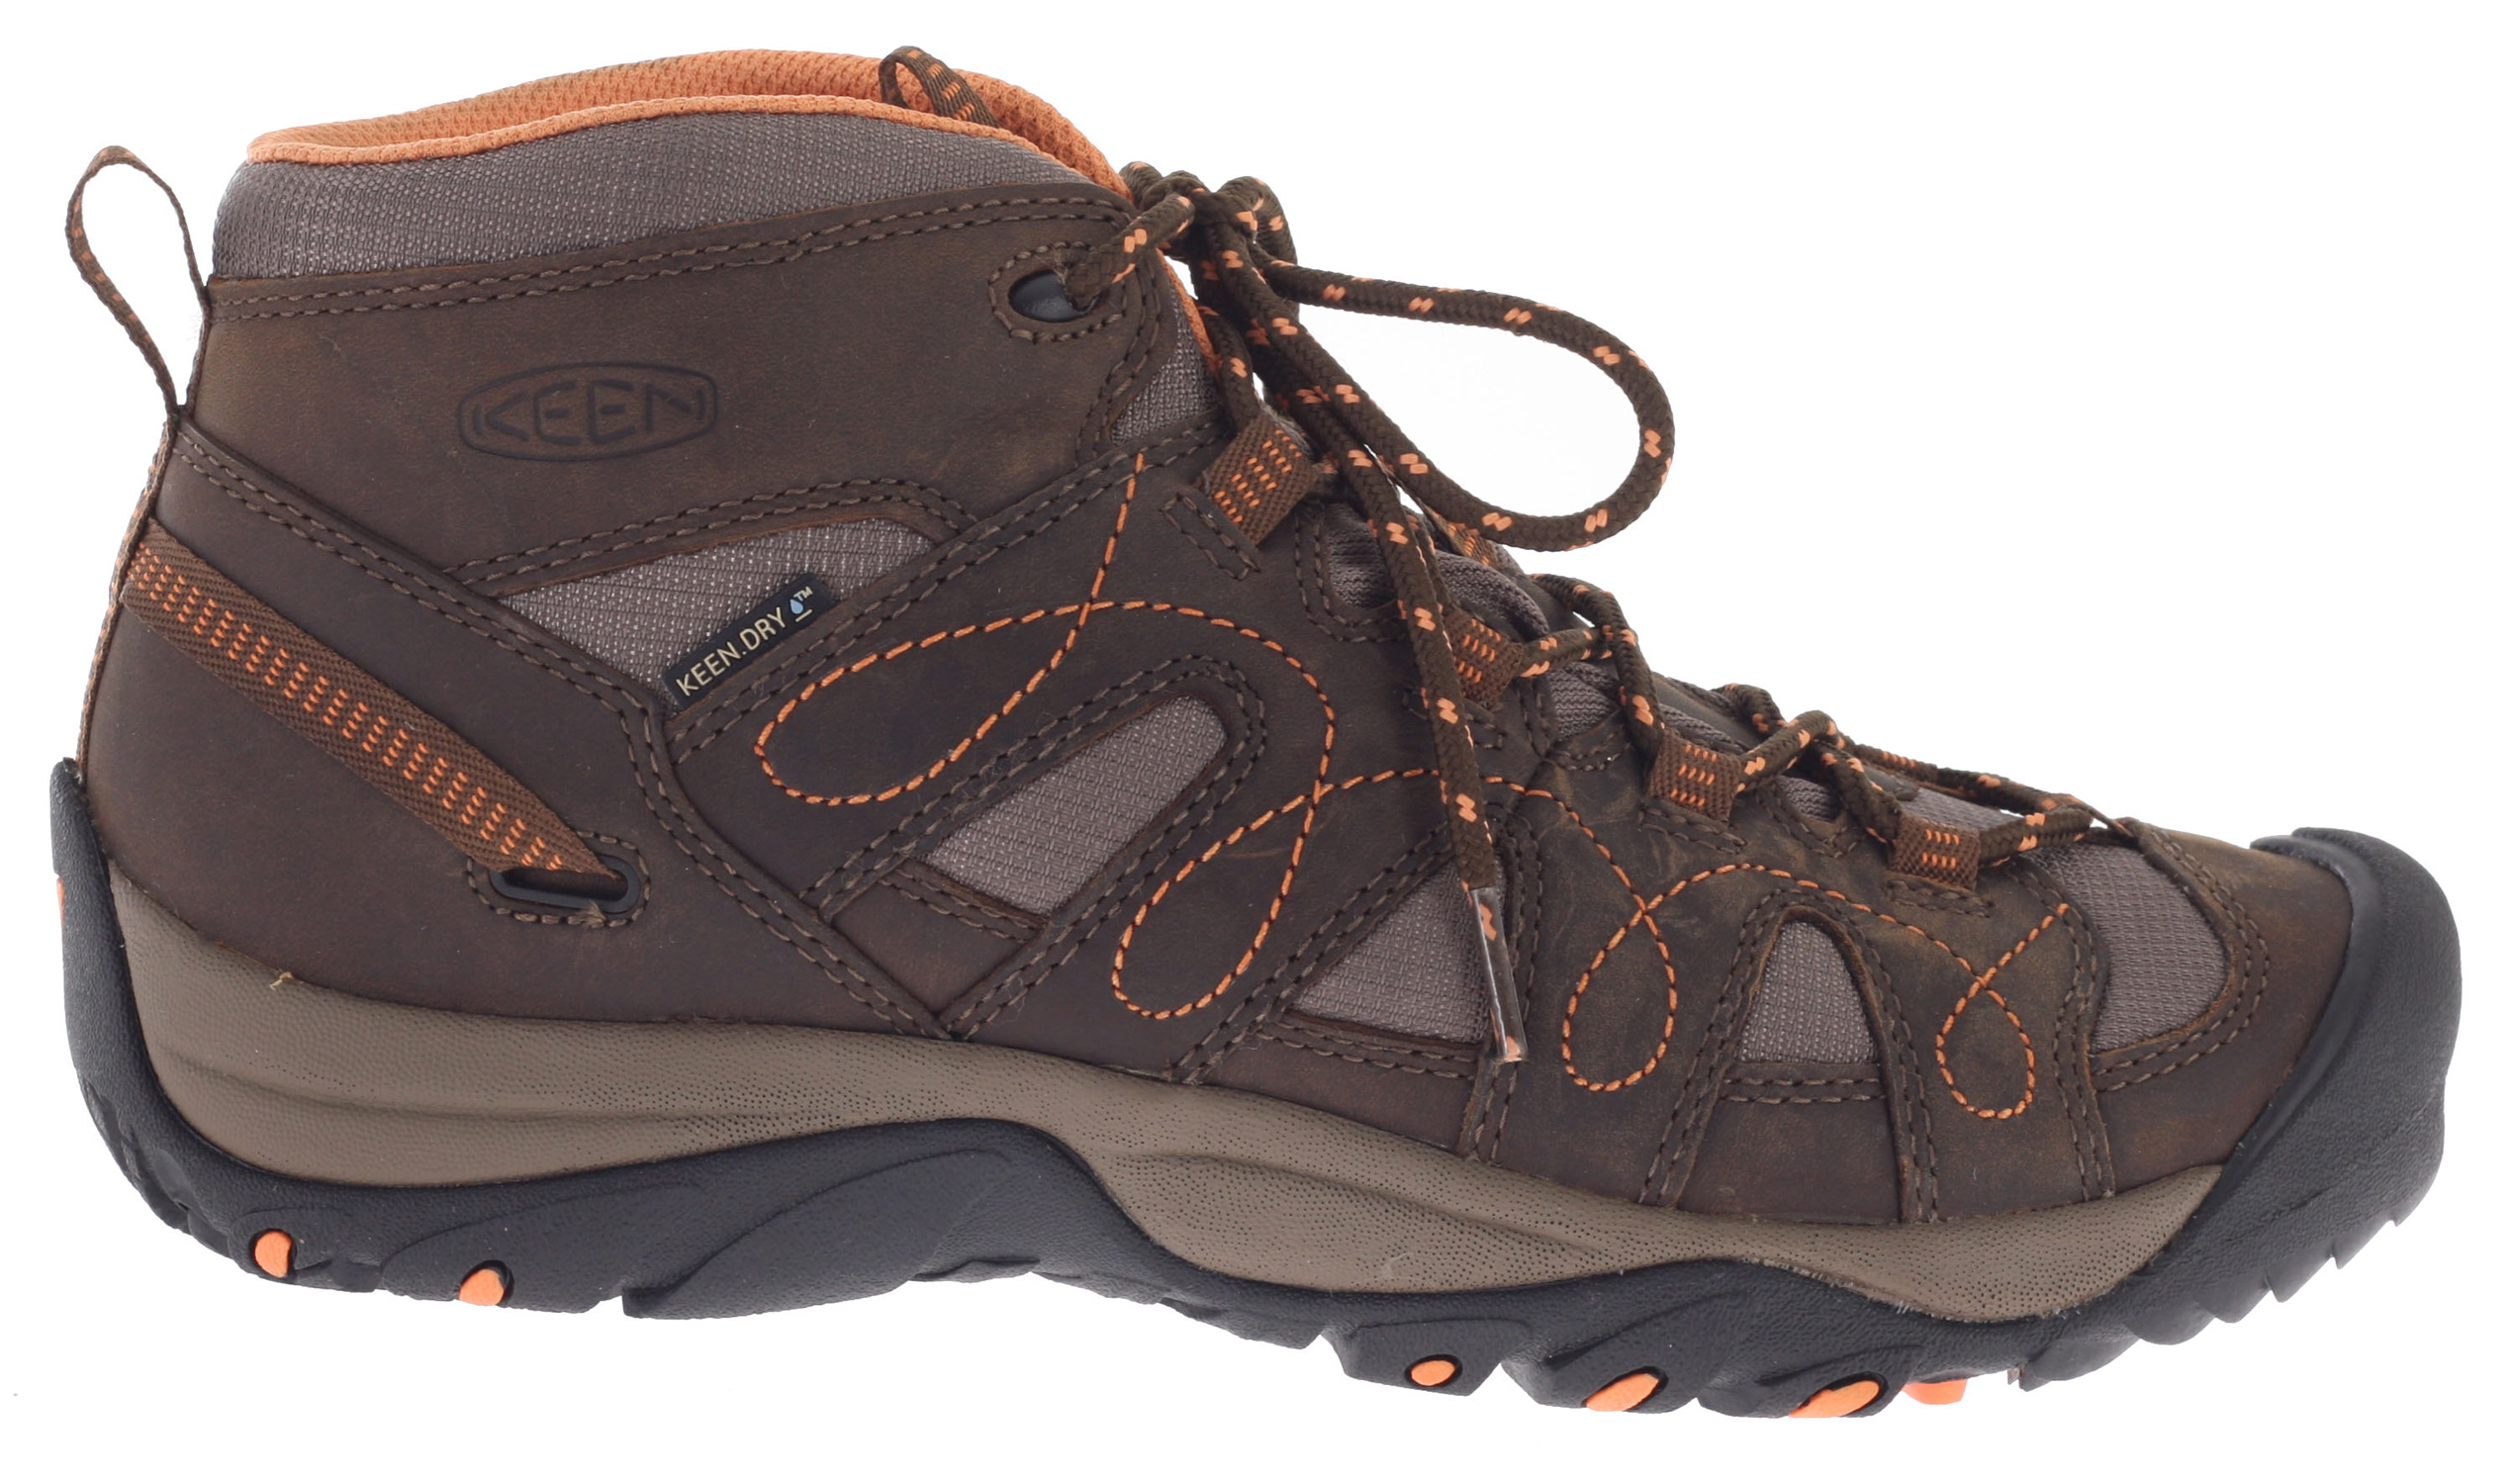 "Camp and Hike The Keen Shasta Mid WP hiking shoe offers all the benefits of a serious hiking boot in a low profile and affordable shoe. Built on a Women's-specific last for a superior fit, the WP edition is ready for winter with a waterproof/breathable KEEN.DRY membrane and tough, trail-ready mesh venting panels to keep feet dry and comfortable through wet weather. Key Features of the Keen Shasta Mid WP Hiking Shoes: Weight: 15.37 oz / 435.732 grams Fit Tip: We find this style runs about a 1/2 size small. Lining: KEEN.DRY Waterproof and breathable textile Upper: Waterproof nubuck leather and breathable mesh Rubber: Non-Marking Collar Height: 5.25"" Calf Circumference: 9.5"" Activities: Hiking Type: Boots, Lace Up Weather: Wet - waterproof 3mm multi directional lugs KEEN.DRY waterproof breathable membrane Non-marking rubber outsole Patented toe protection Removable metatomical dual density EVA footbed Single density PU midsole Waterproof nubuck leather & breathable mesh upper Women's specific fit Metatomical Footbed Design: This internal support mechanism is anatomically engineered to provide excellent arch support and cradle the natural contours of the foot. - $70.95"